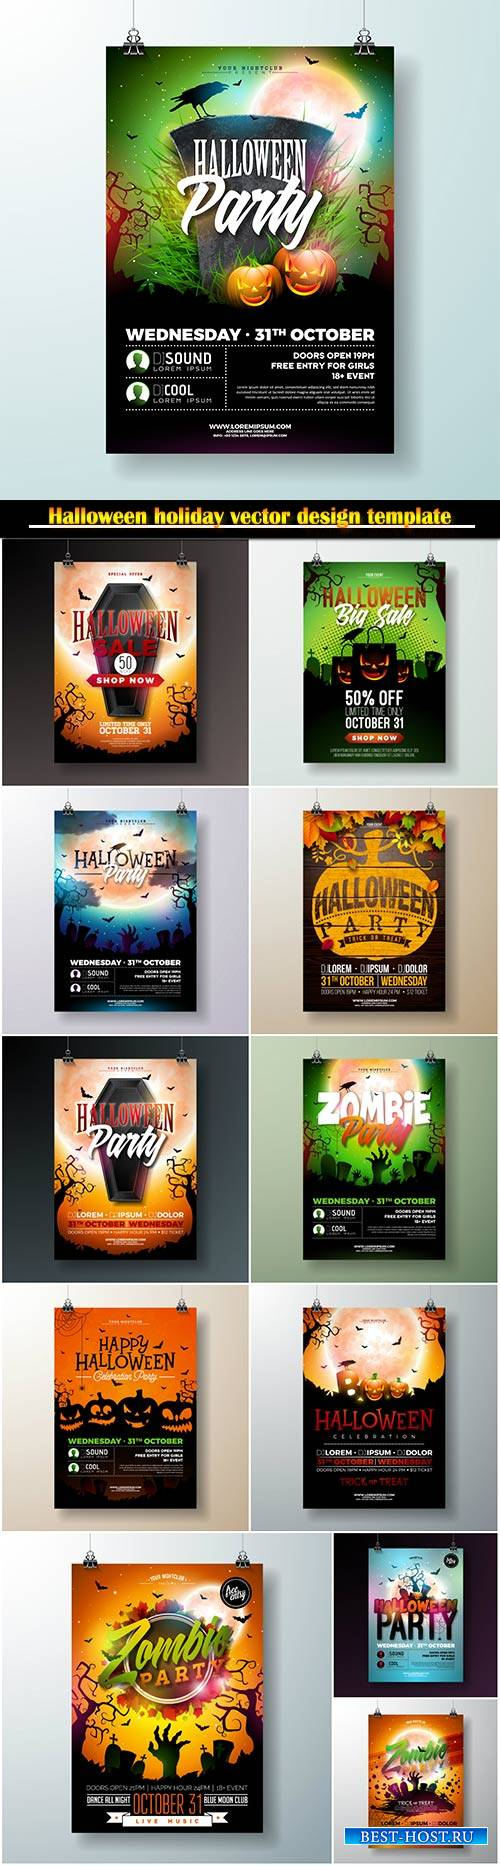 Halloween holiday vector design template